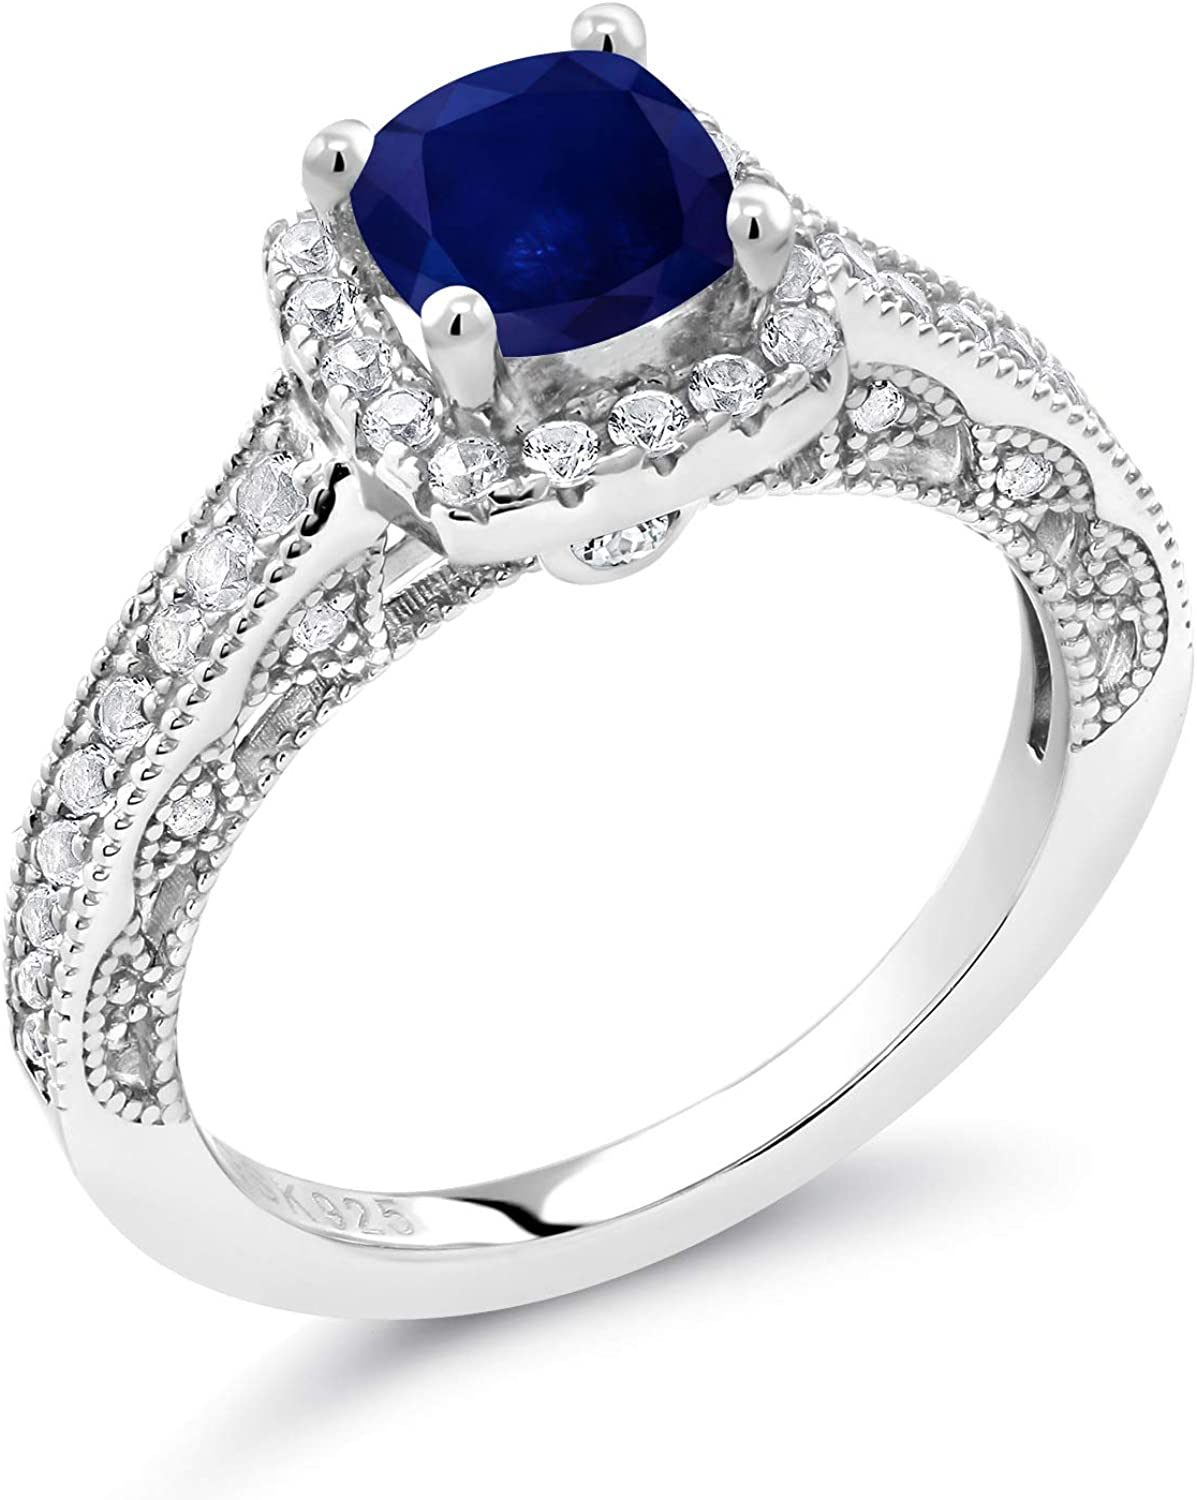 Gem Stone King 925 Sterling Silver Blue Sapphire and White Created Sapphire Women Engagement Ring (1.88 Ct Cushion, Available in size 5, 6, 7, 8, 9)